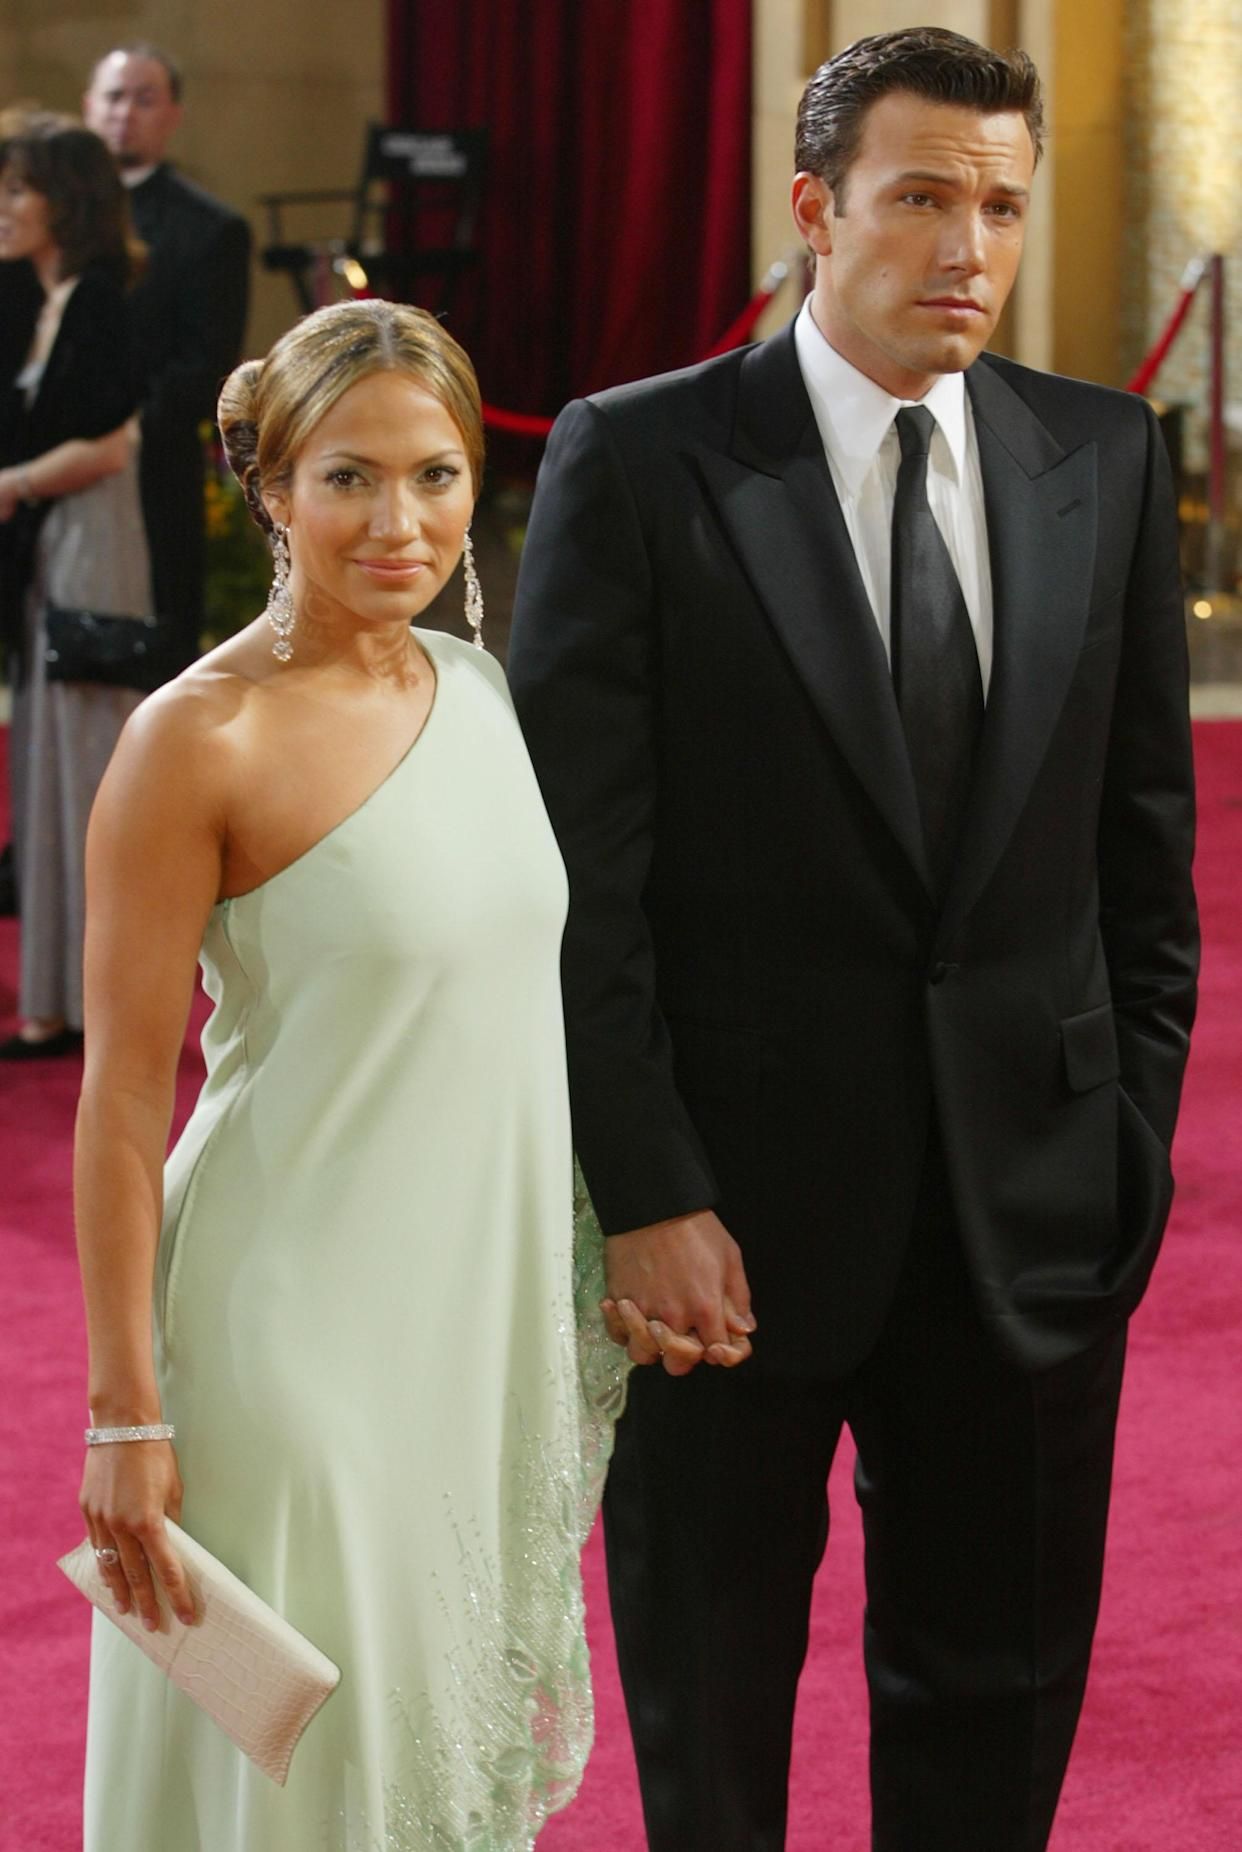 Jennifer Lopez and Ben Affleck attend the 75th Annual Academy Awards at the Kodak Theater on March 23, 2003 in Hollywood, California. (Getty Images)